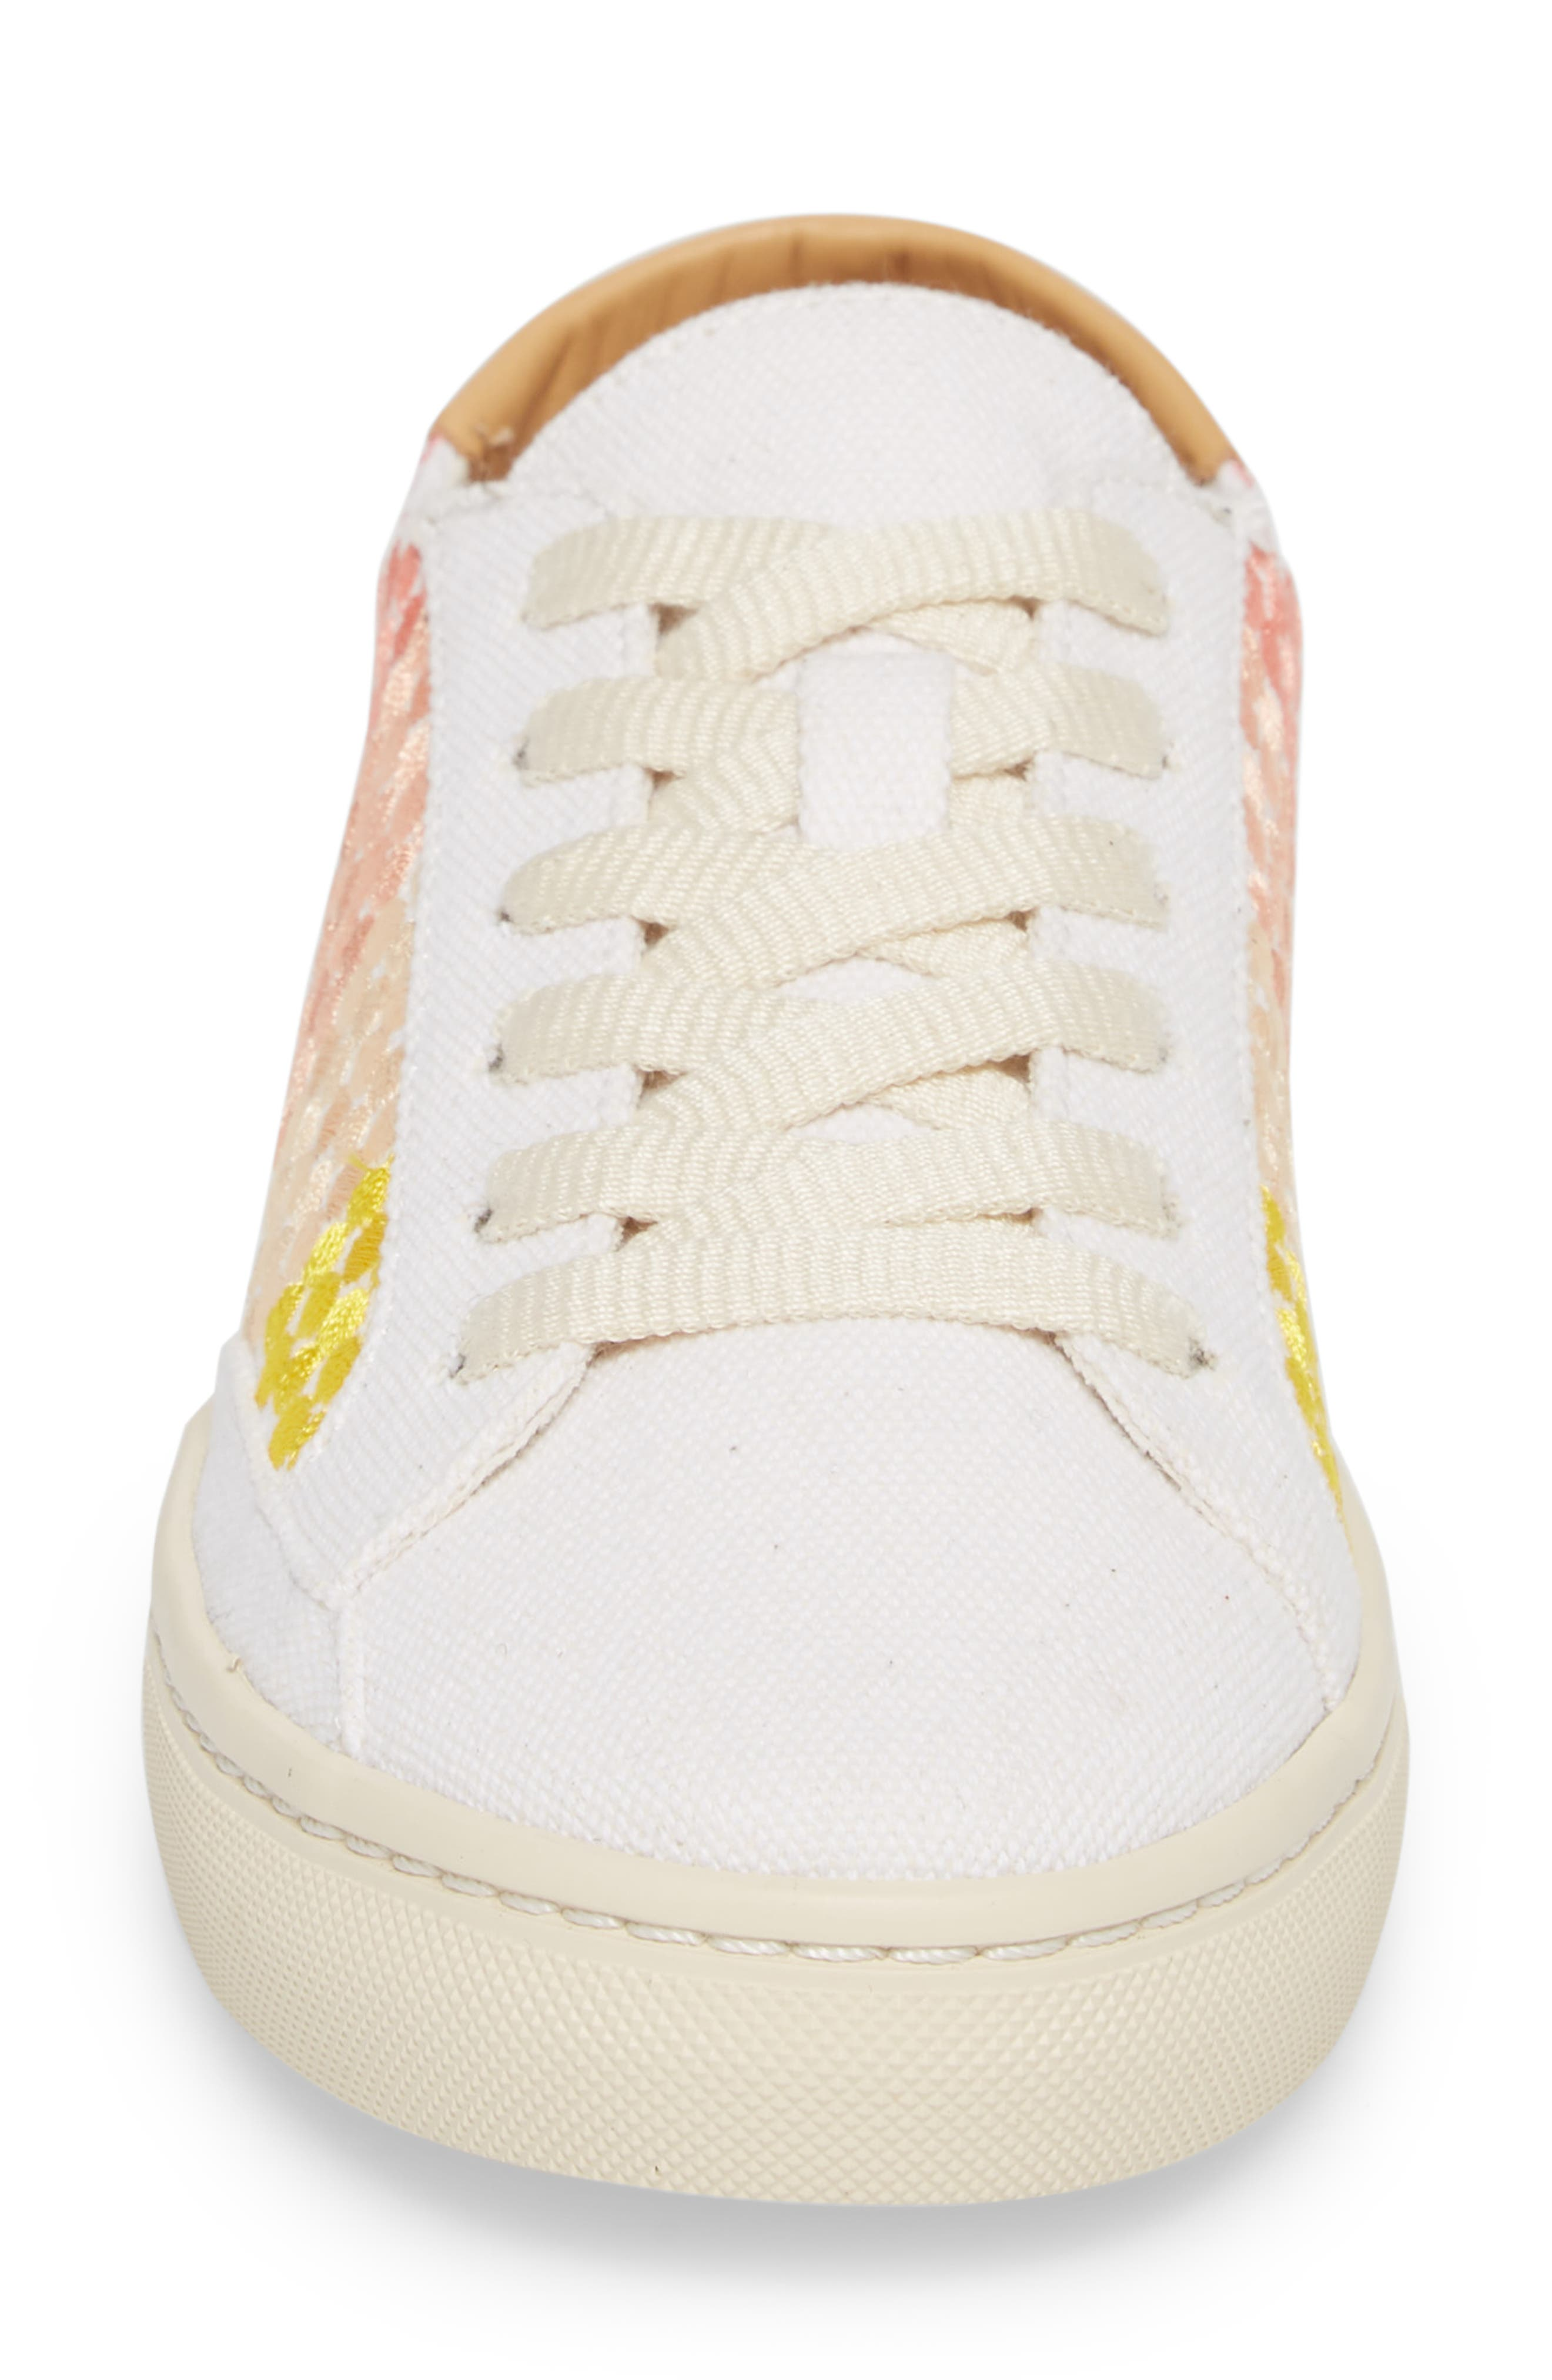 Embroidered Ombre Sneaker,                             Alternate thumbnail 4, color,                             731